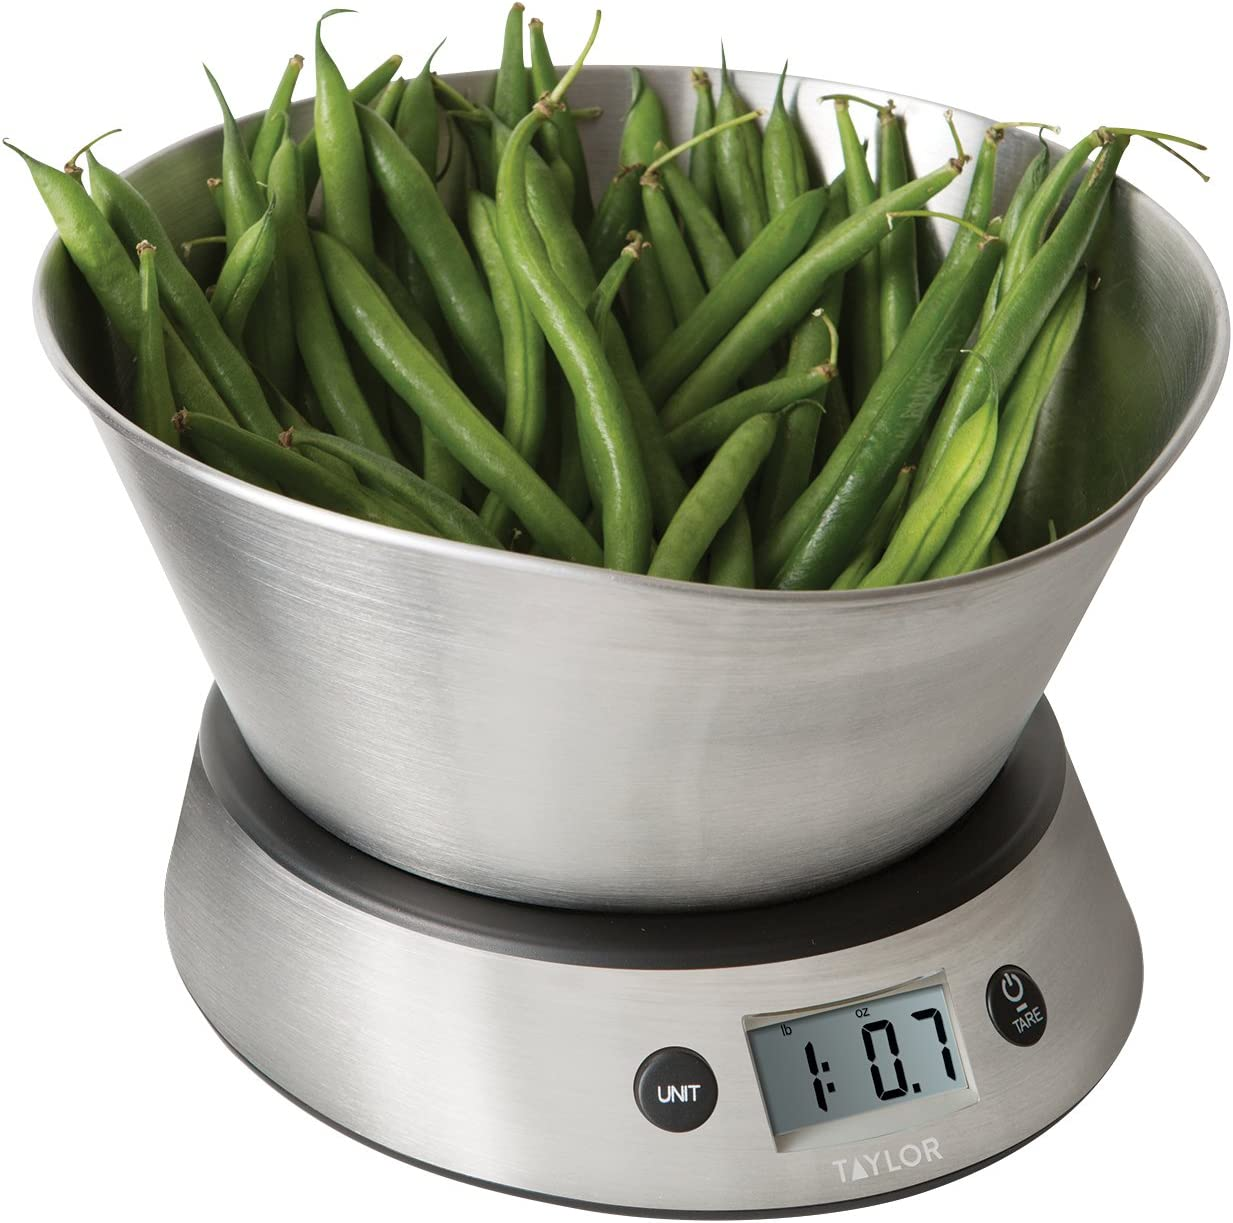 Taylor Weighing Bowl Digital Kitchen Scale 11 Lb Capacity Amazon Ca Home Kitchen